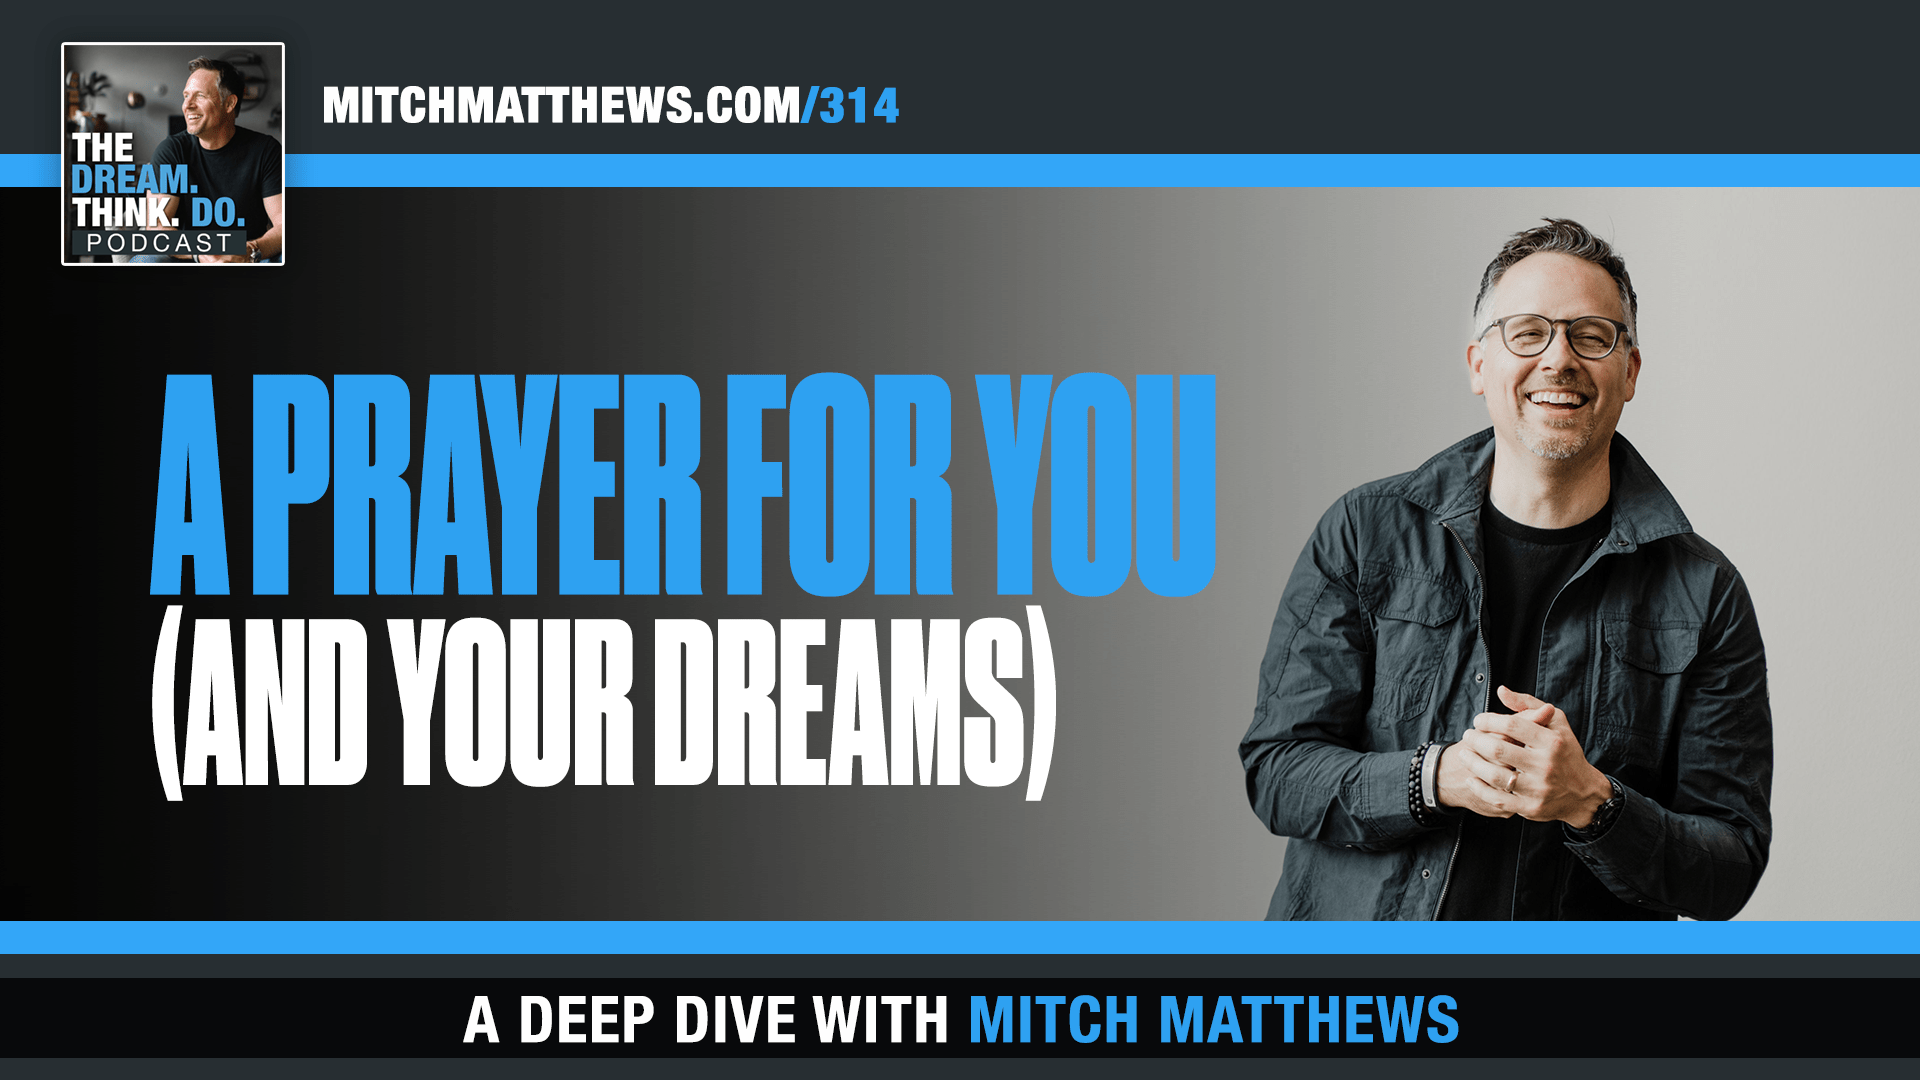 A Prayer for you and your dreams